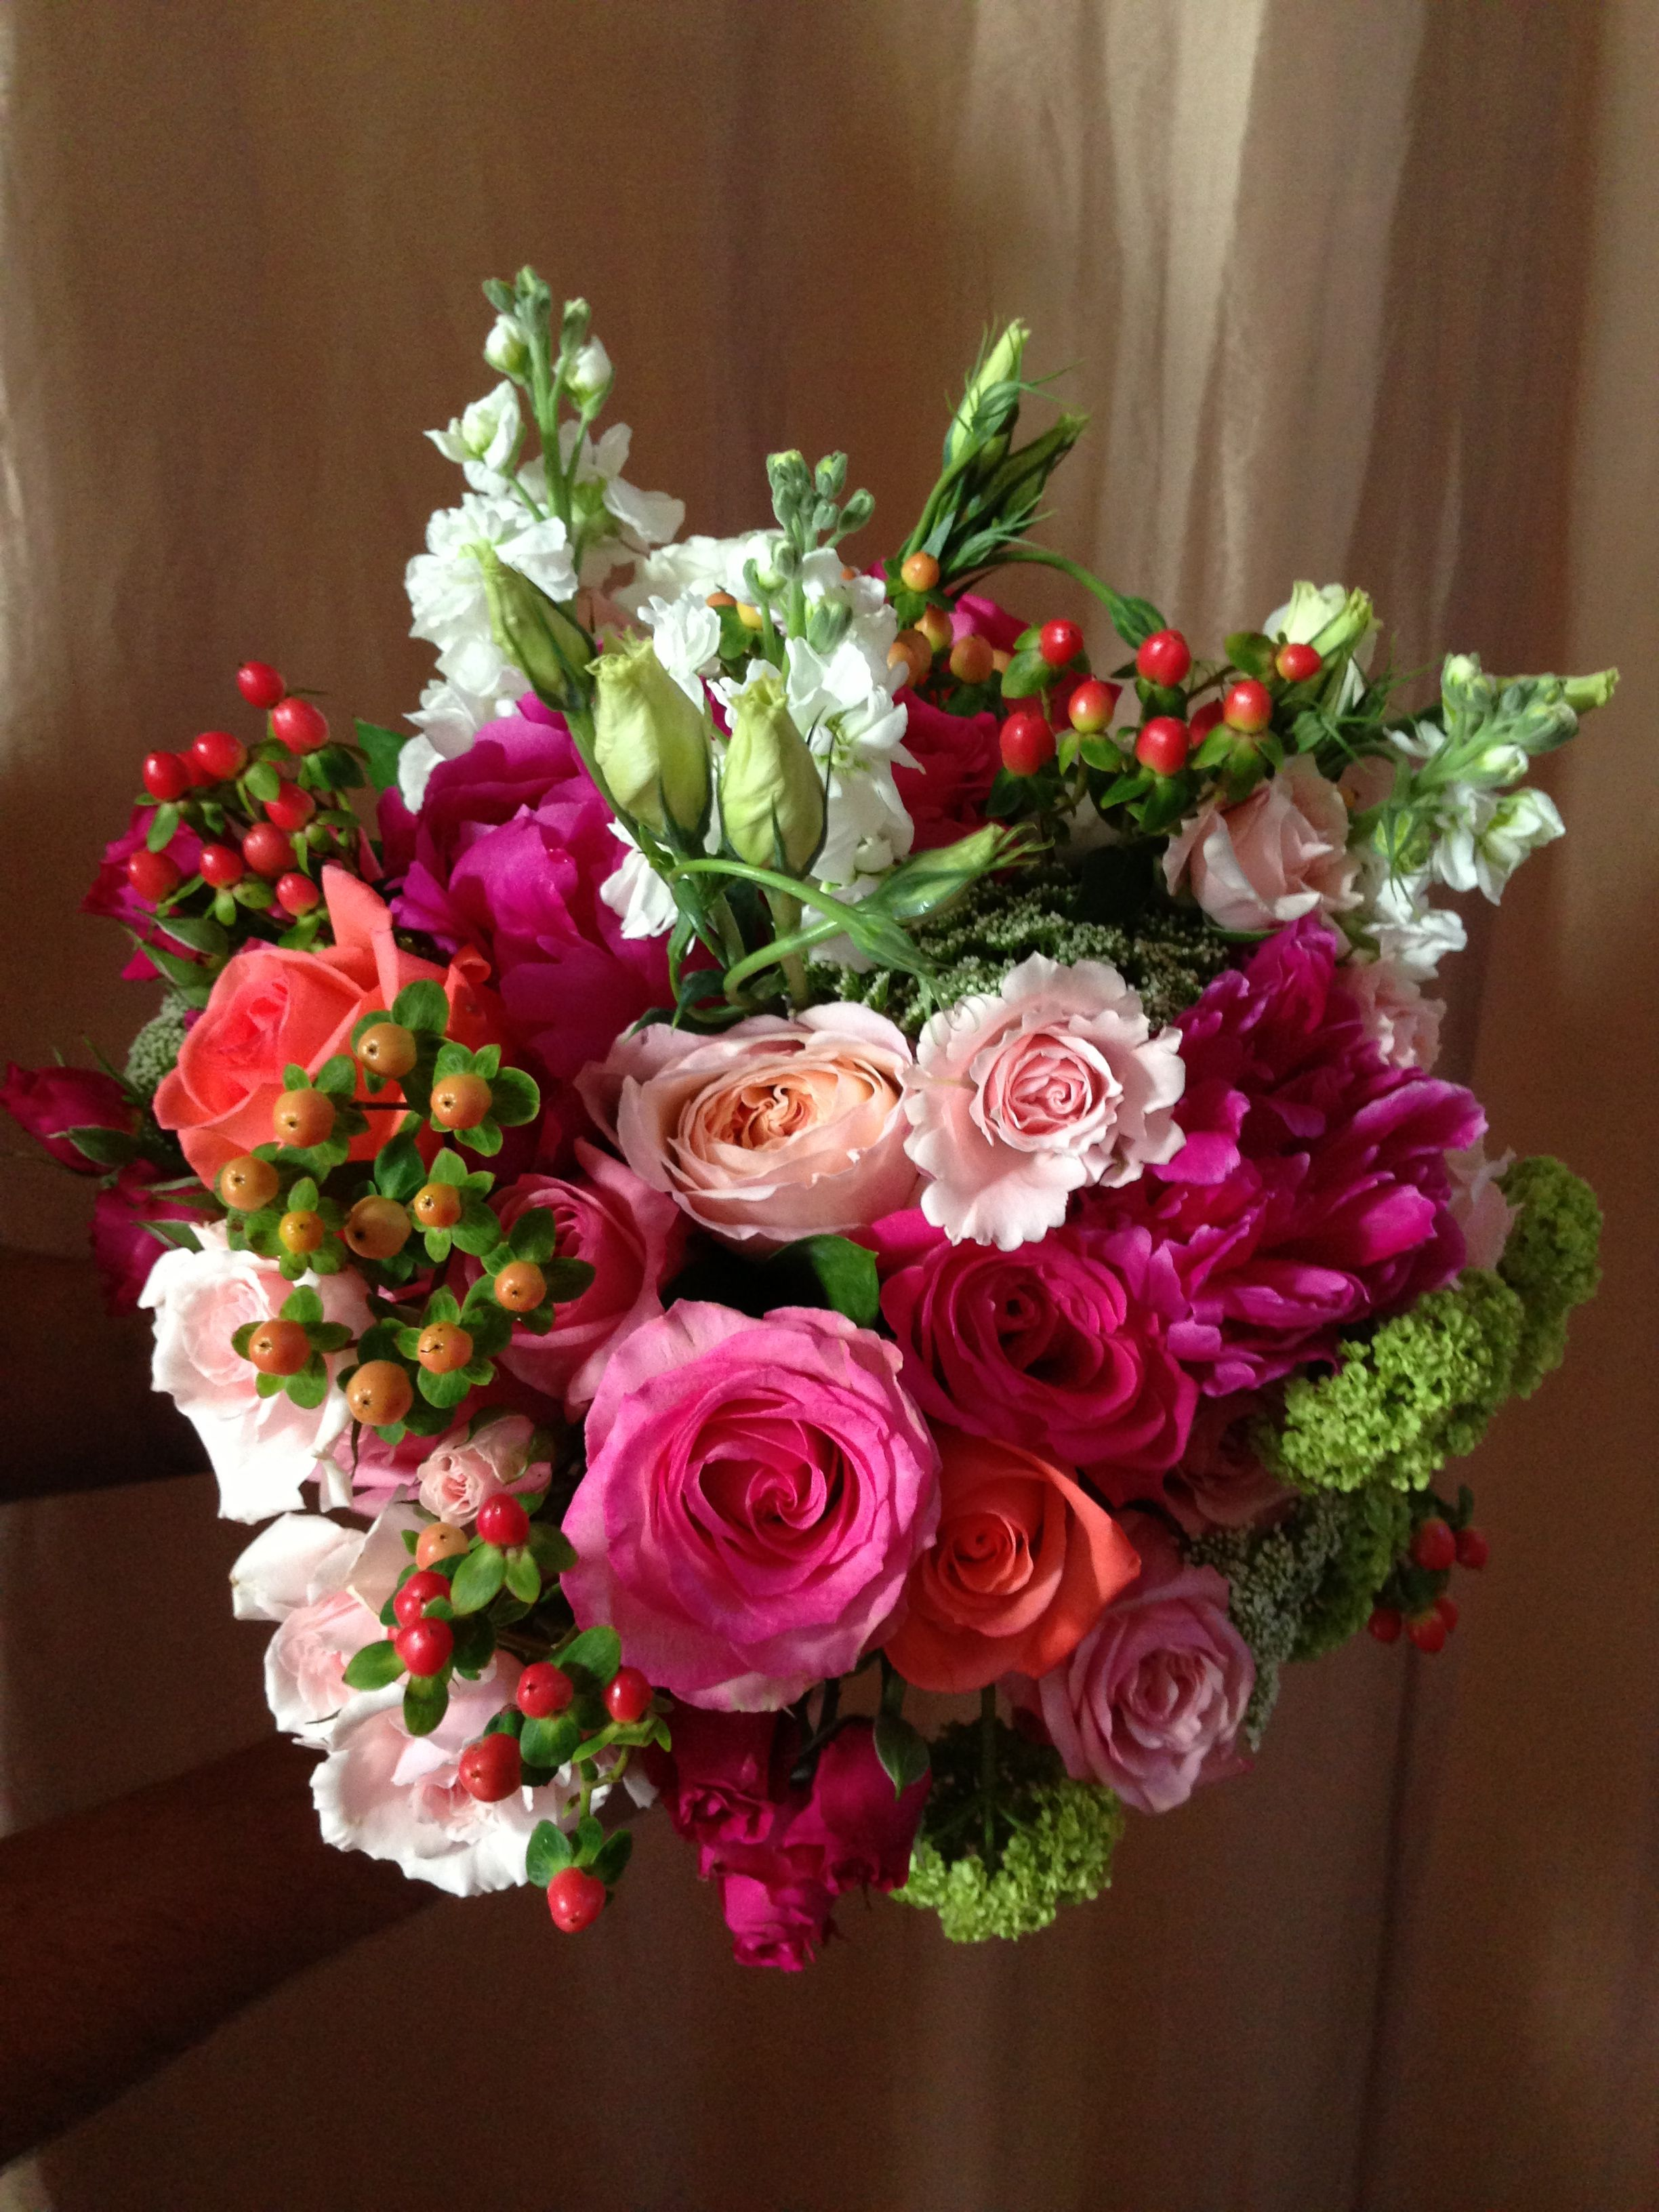 white stock, lisianthus, green viburnum, peach hypericum, light pink roses and spray roses, hot pink roses and peonies